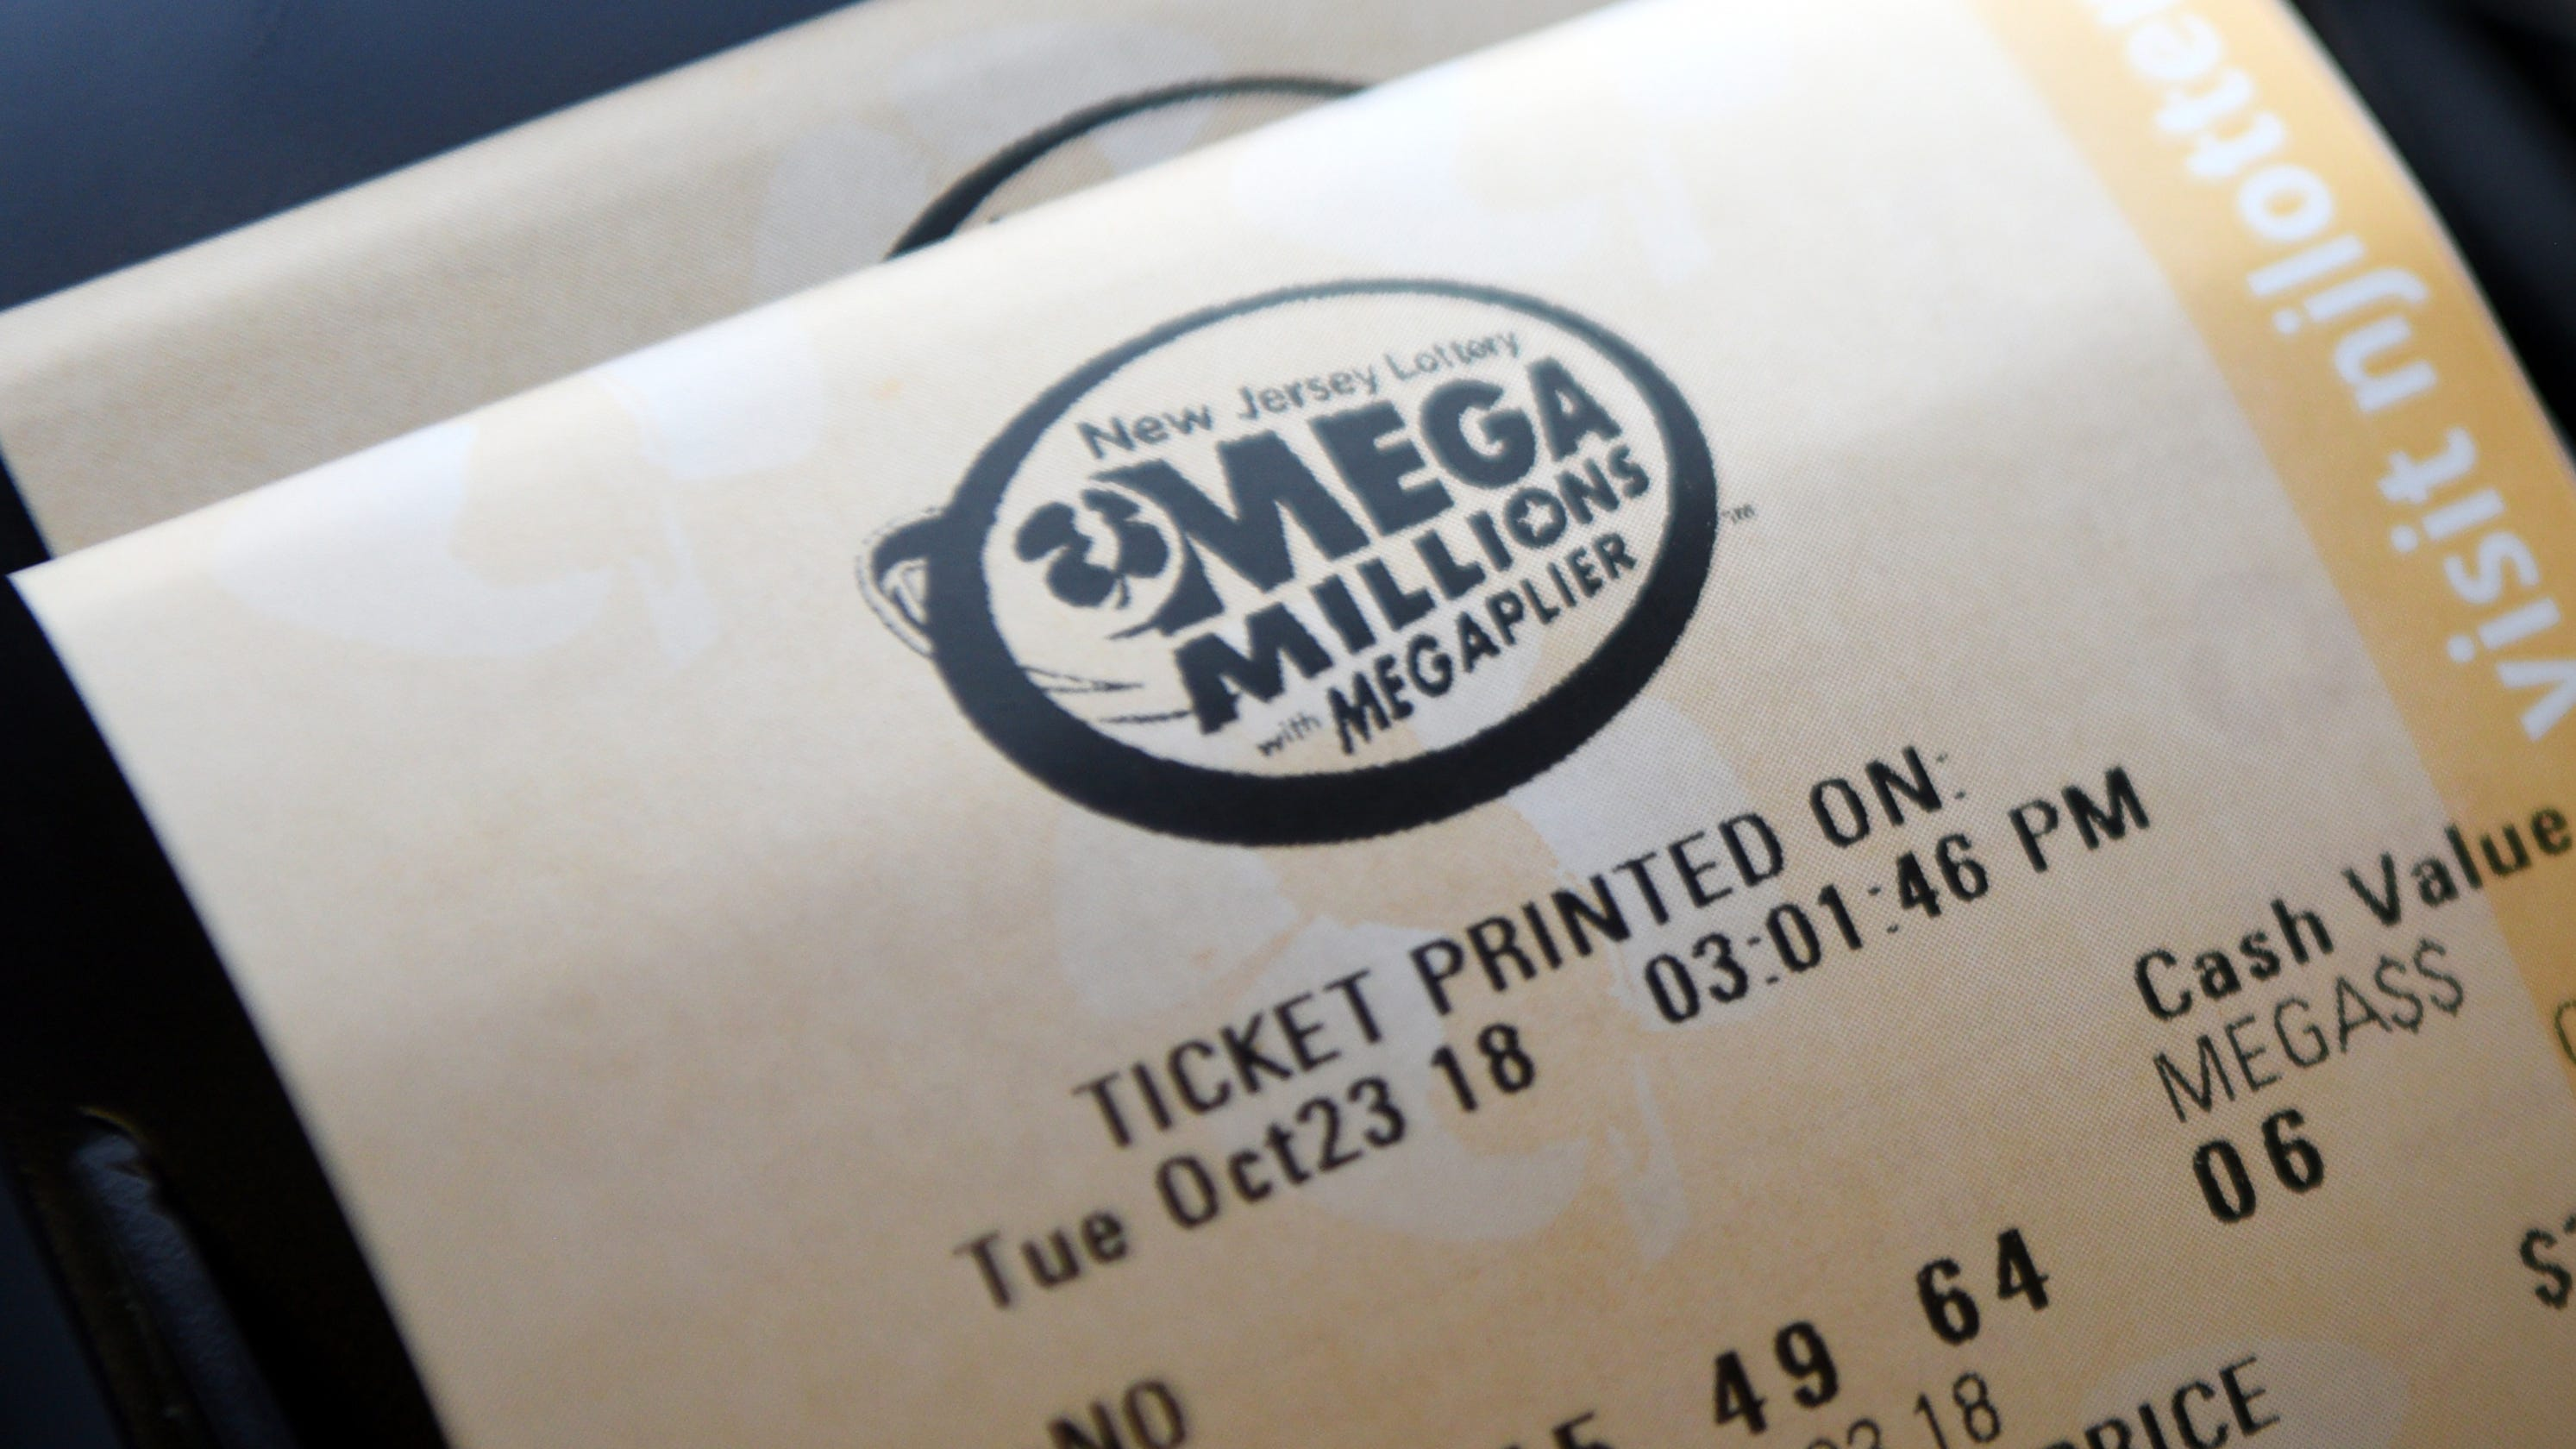 What are the odds of winning the Mega Millions jackpot